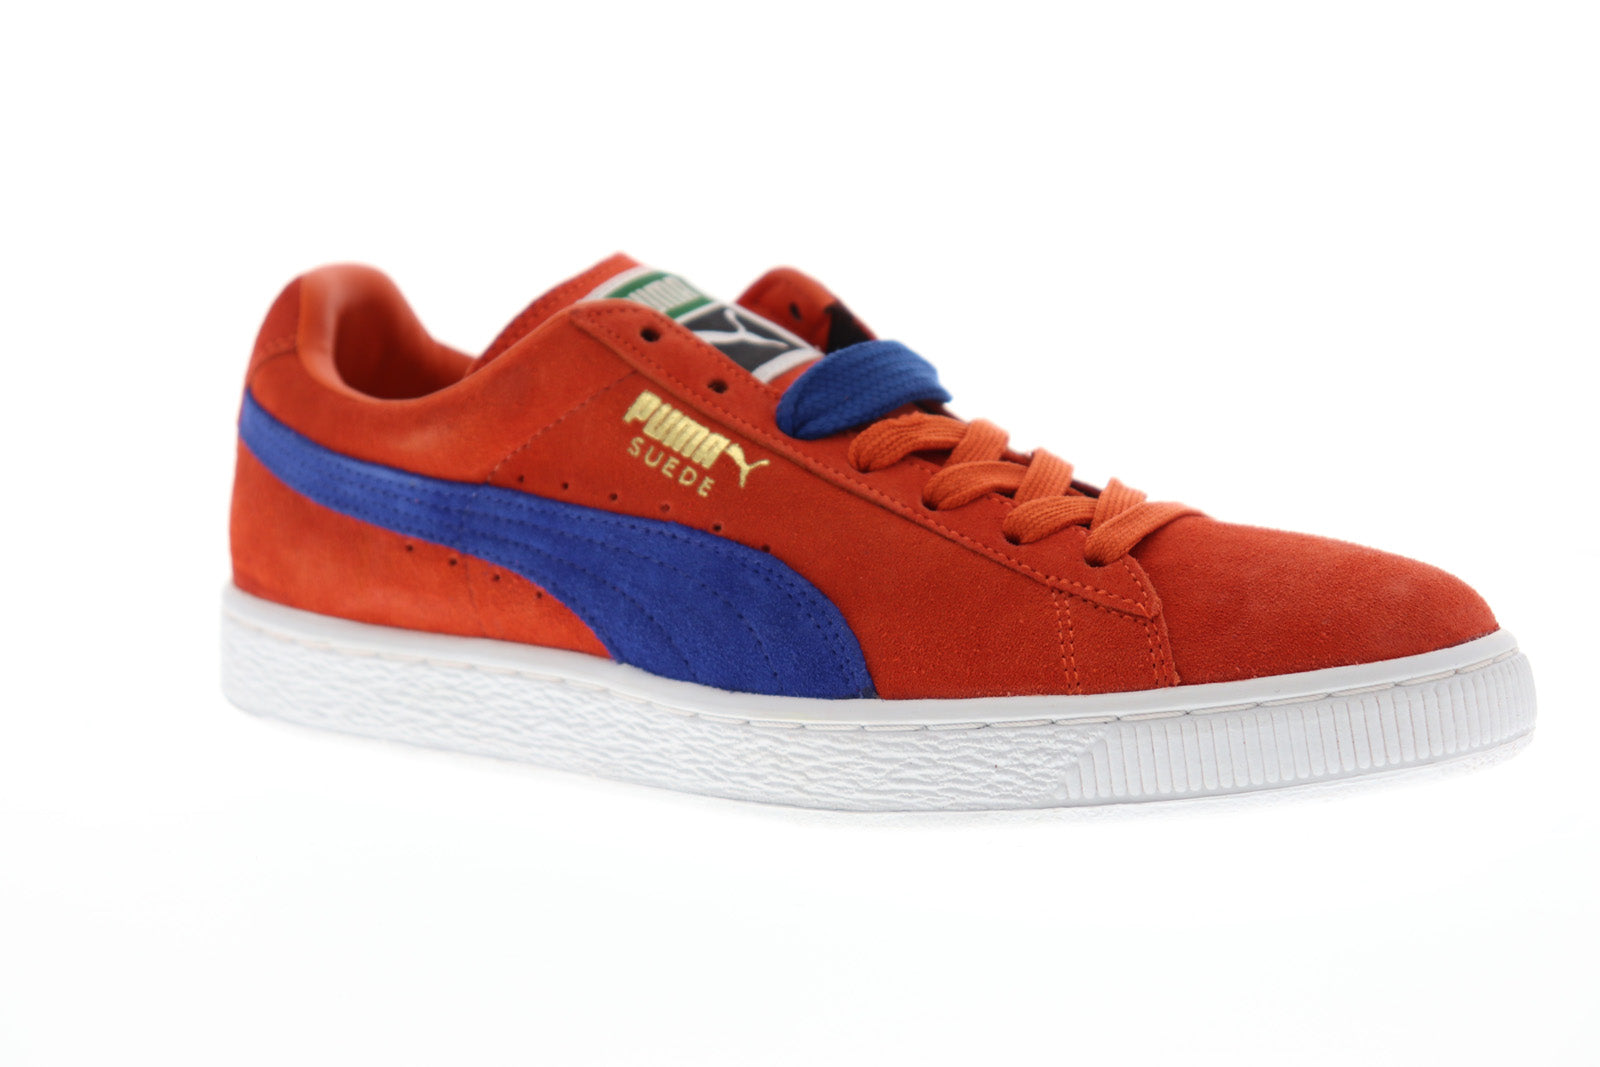 promo code cc850 7200c Puma Suede Classic + Mens Orange Suede Low Top Lace Up Sneakers Shoes